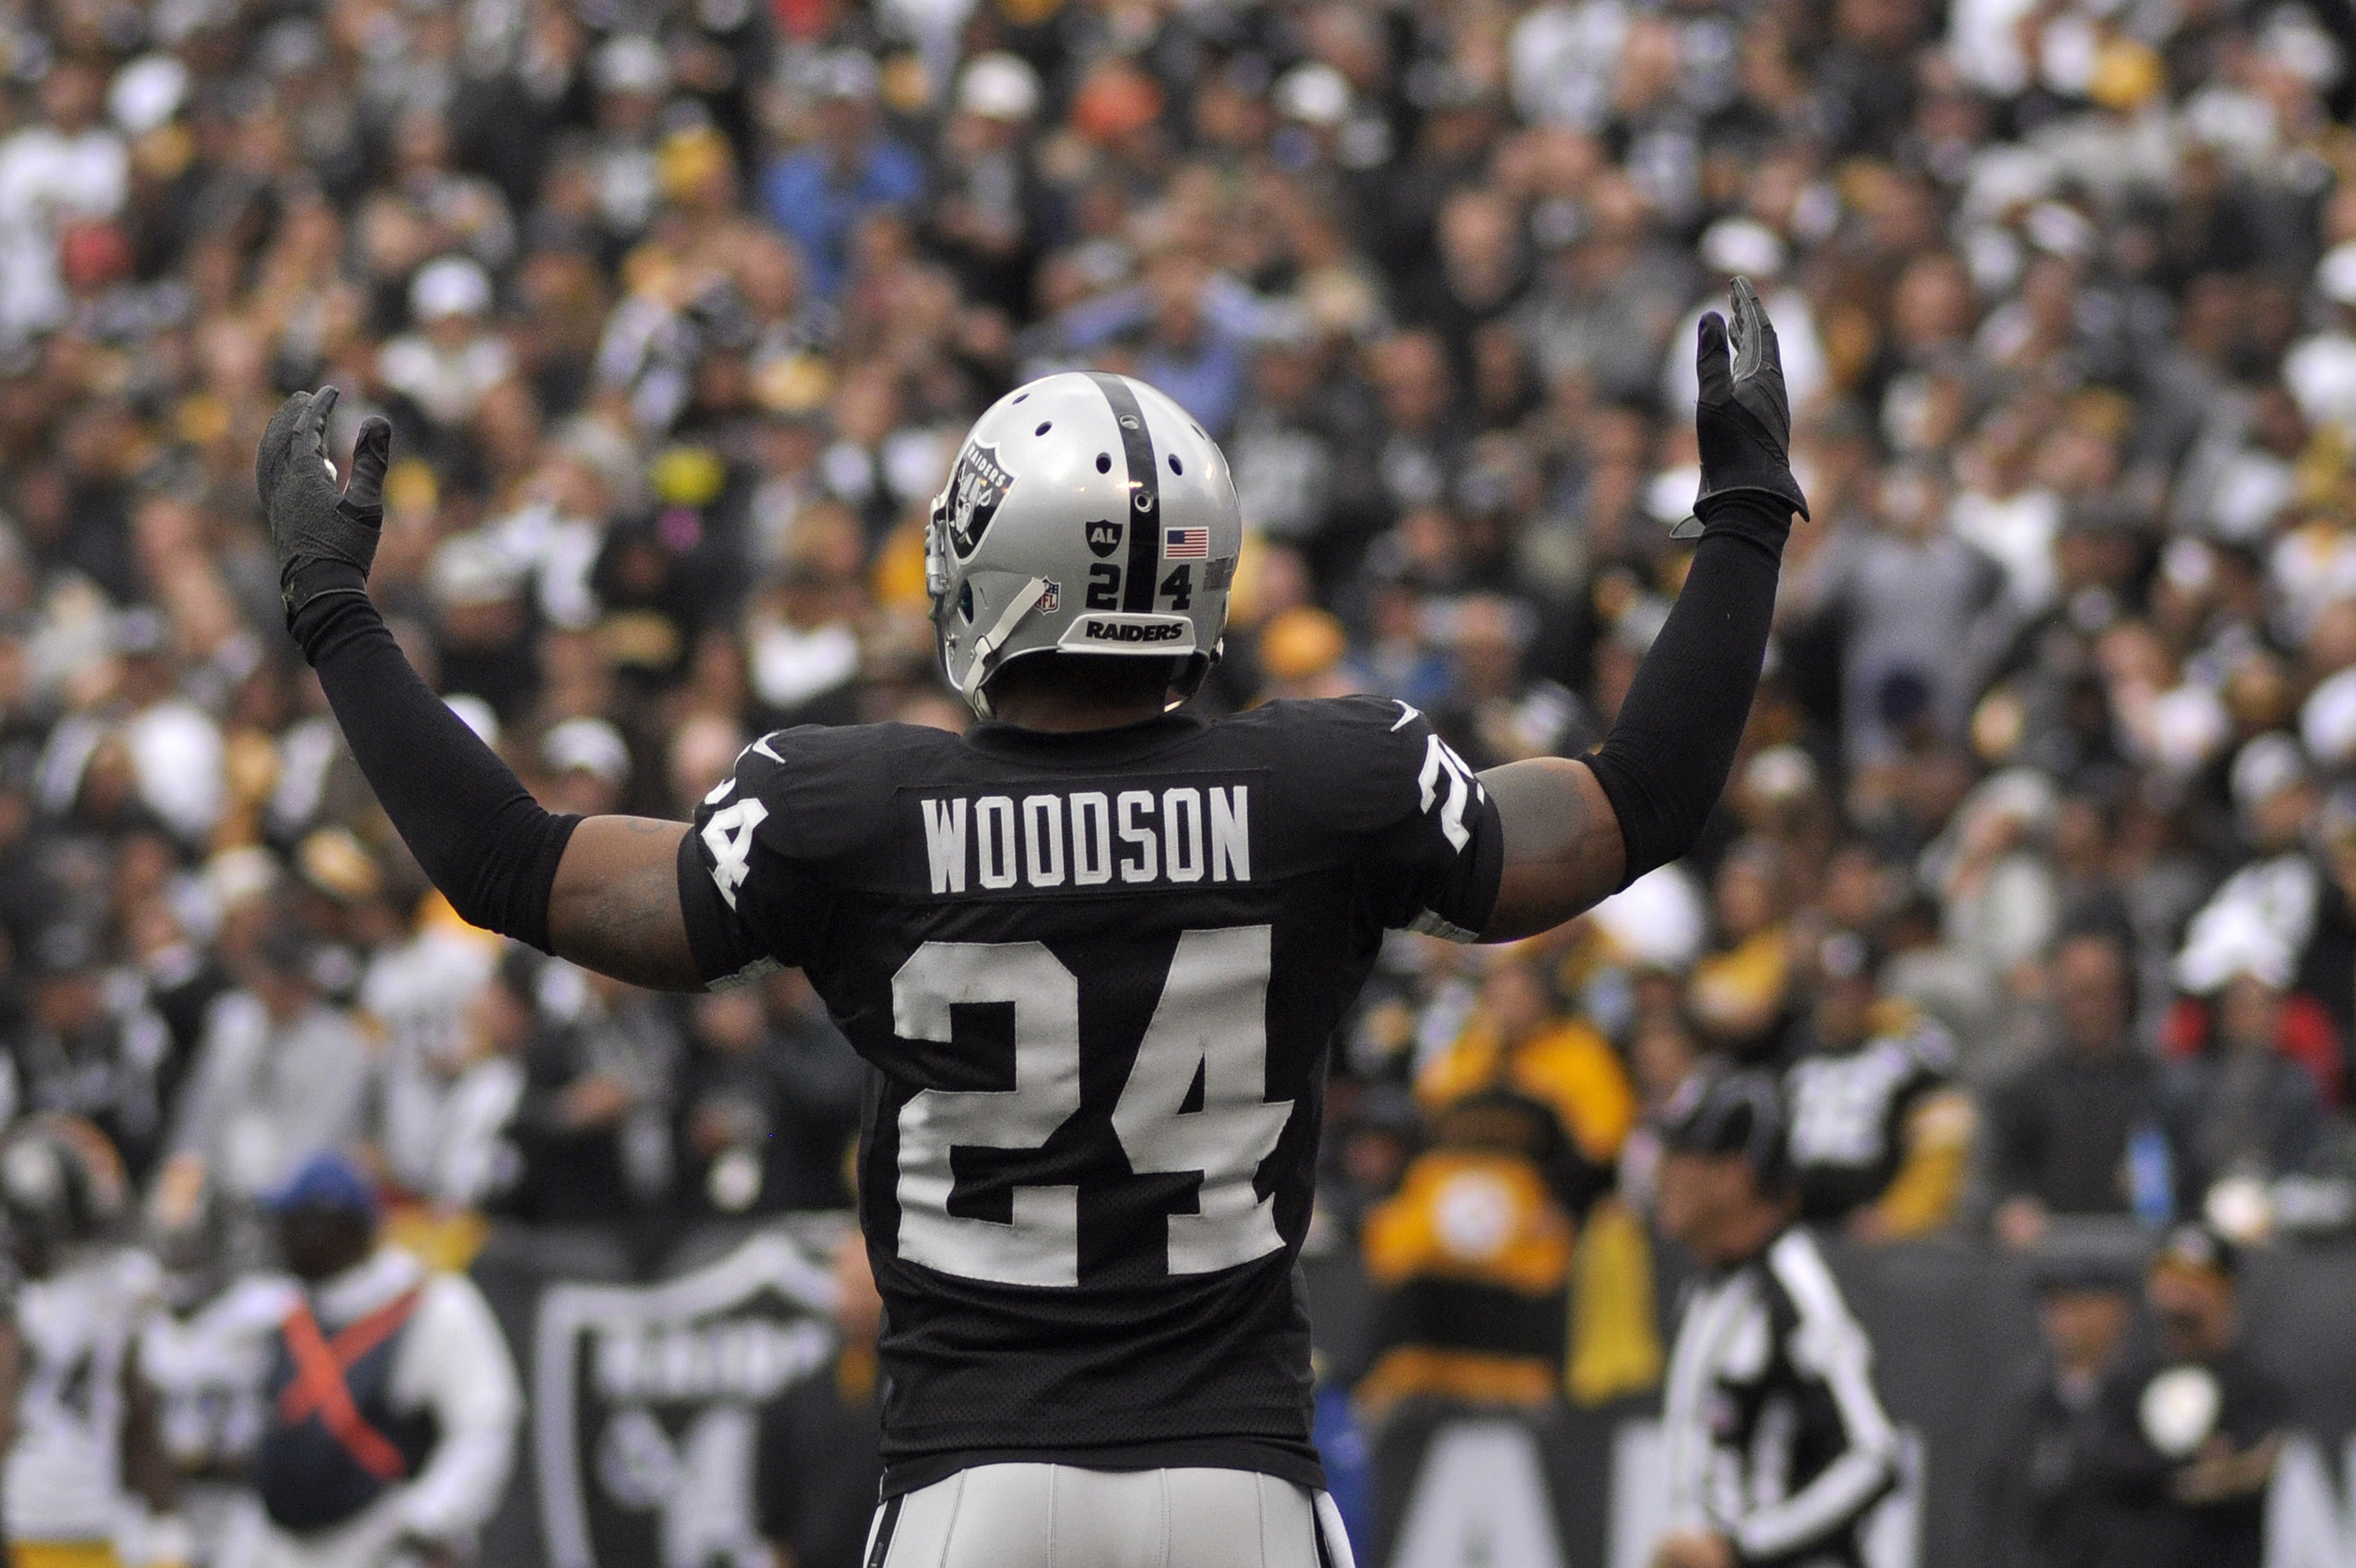 Oakland Raiders cornerback Charles Woodson (24) pumps up the crowd during the football game against the Pittsburgh Steelers at O.co Coliseum in Oakland, Calif., on Sunday, Oct. 27, 2013. The Raiders won 21-18.